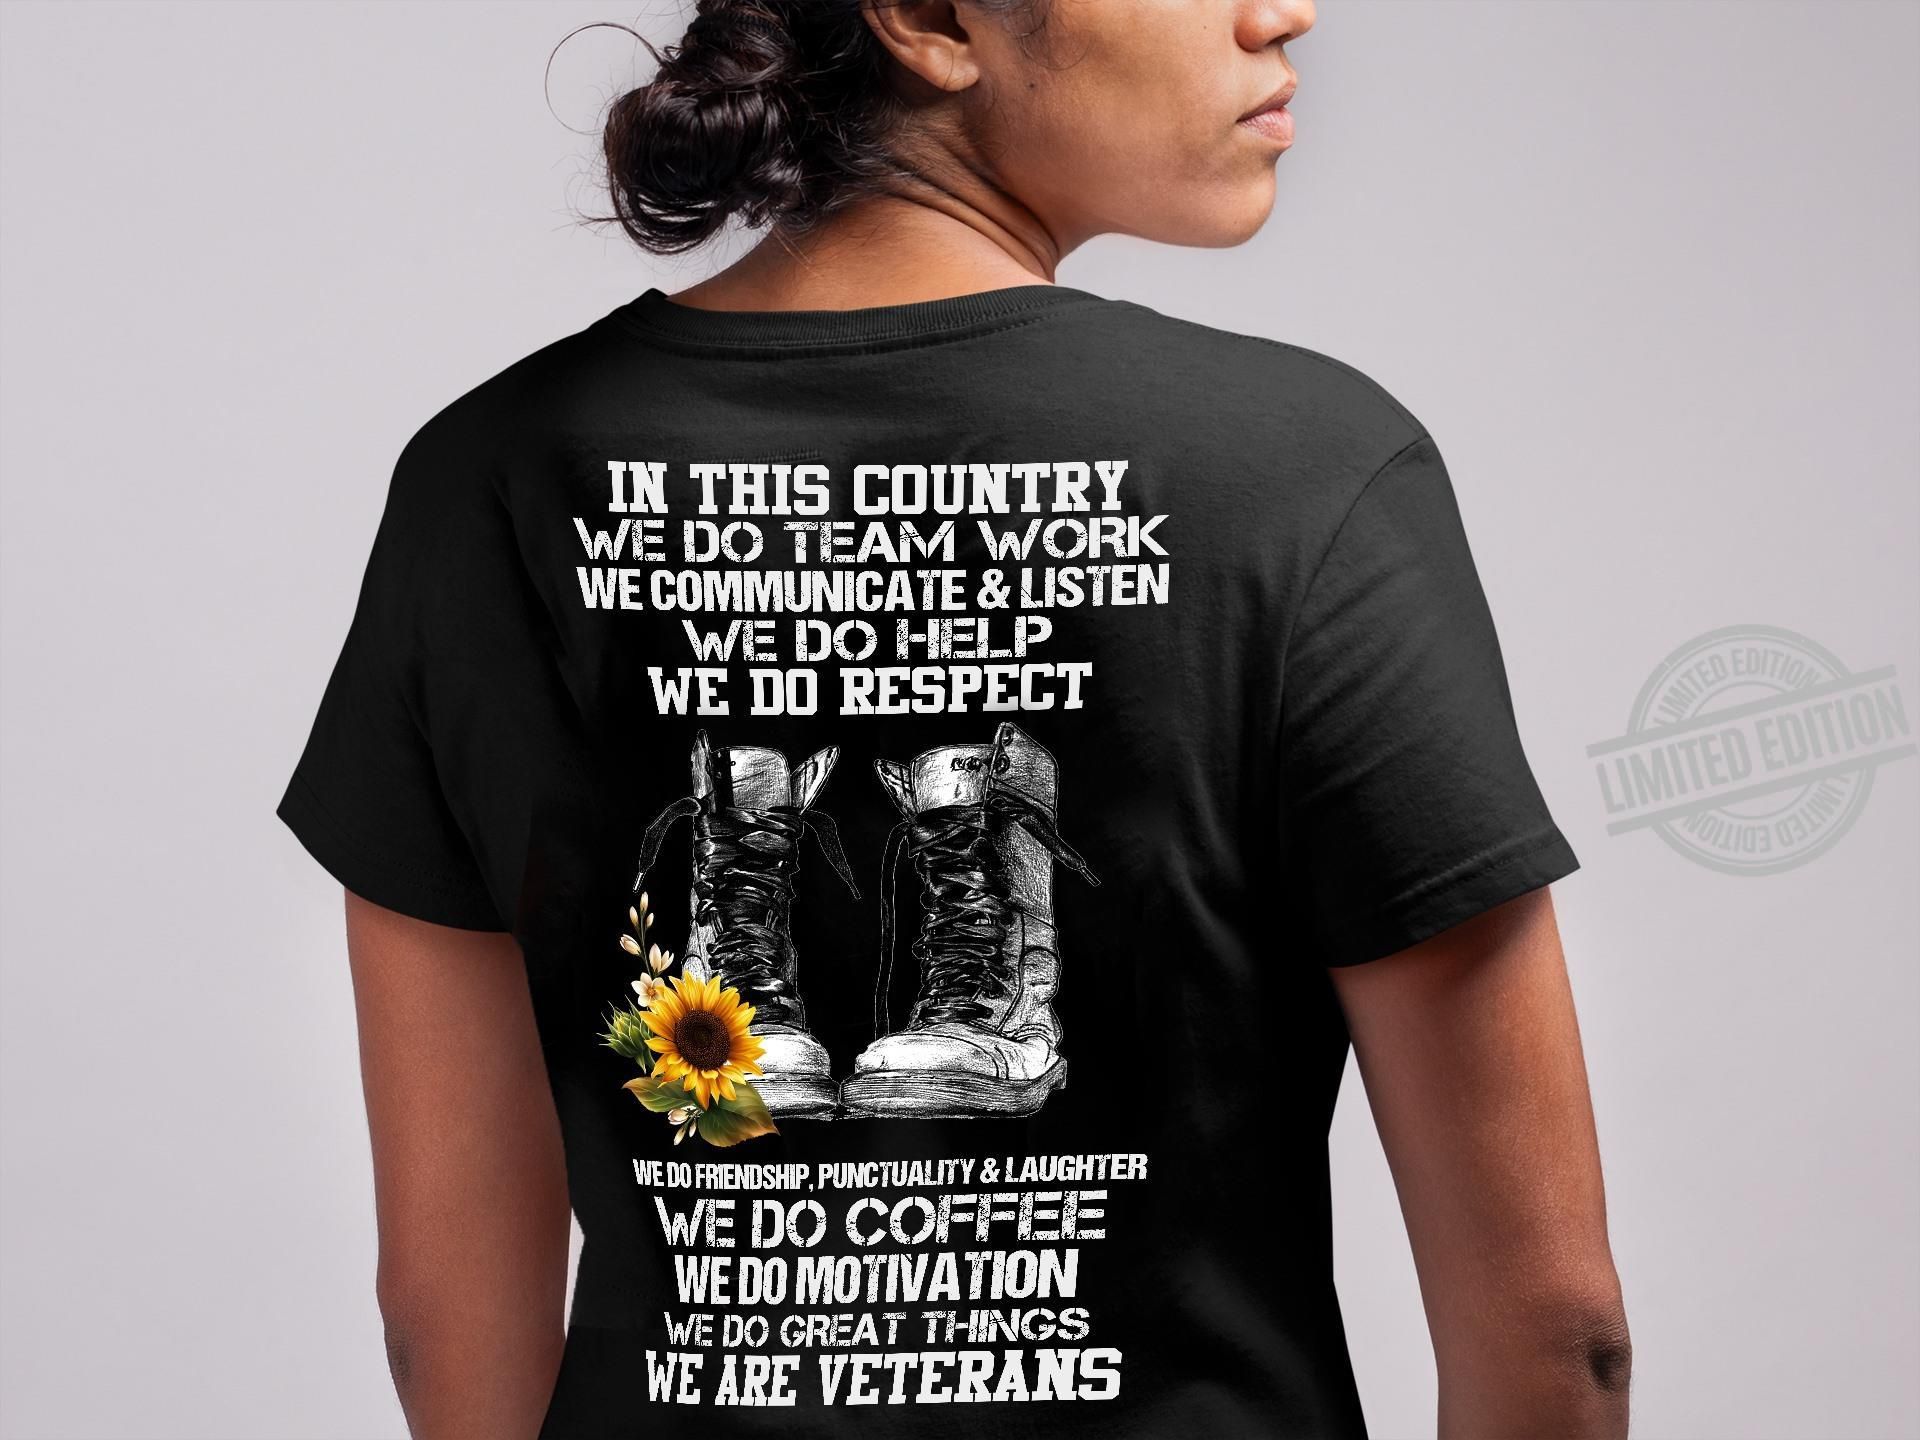 In This Country We Do Team Work We Communicate & Listen We Do Help We Do Respect We Do Friendship Punctuality & Laughter We Do Coffee We Do Motivation We Do Great Things We Are Veterans Shirt